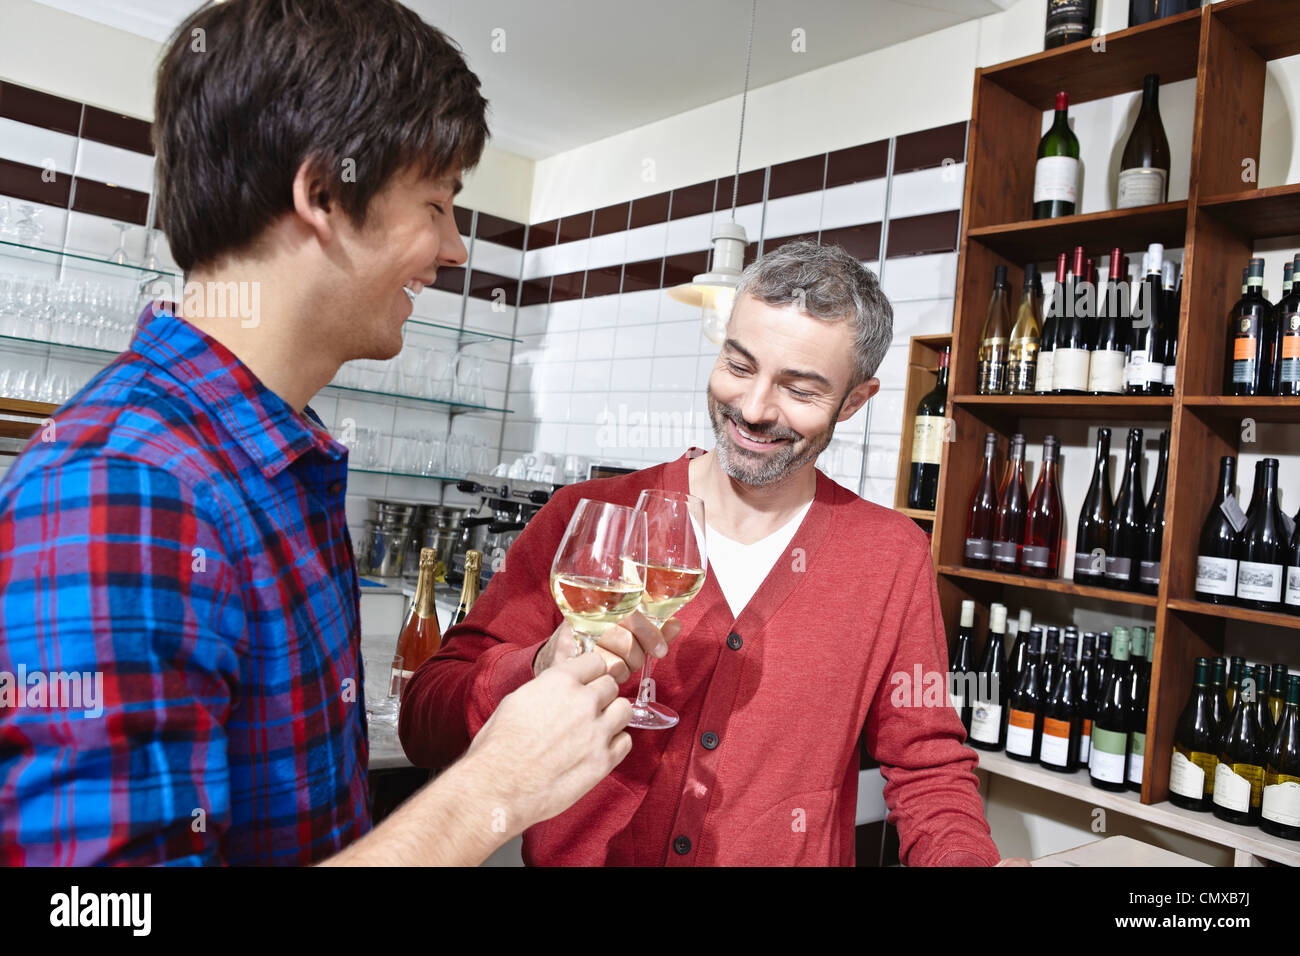 Germany, Cologne, Man having wine, smiling Stock Photo